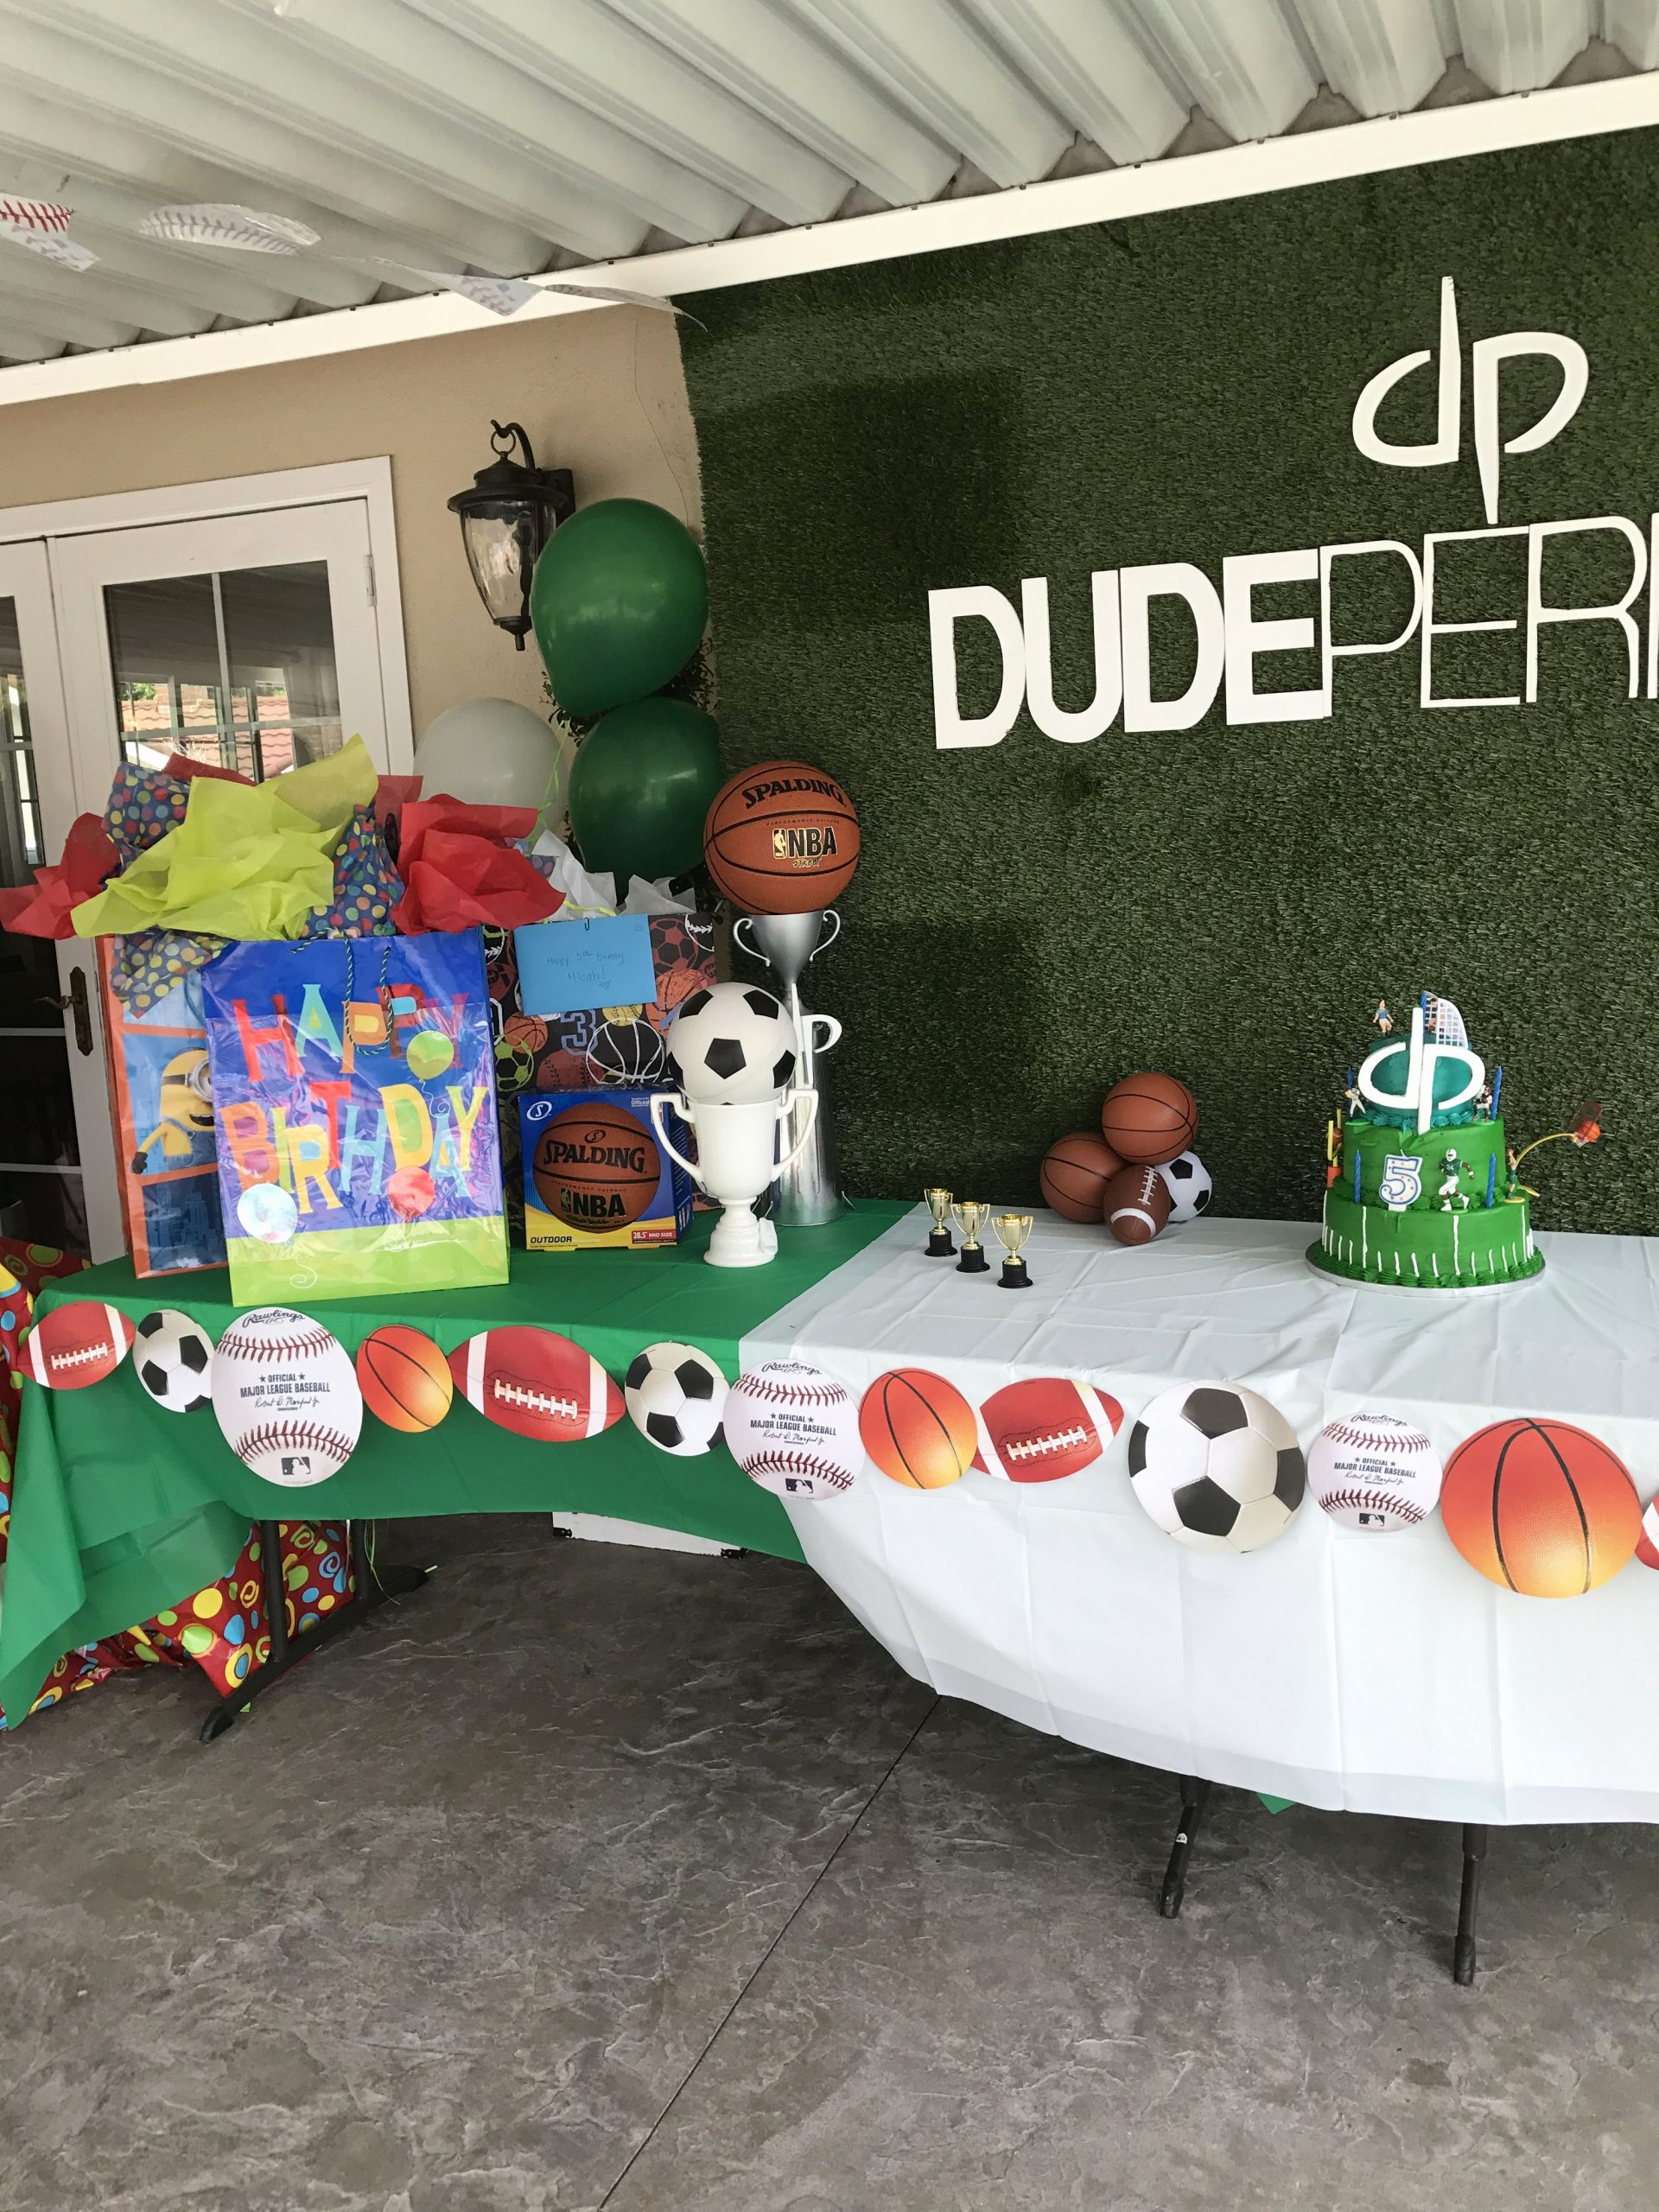 Birthday Decoration Ideas for 10 Year Old Boy Awesome Pin by Mill Home Design On Dude Perfect Birthday Party